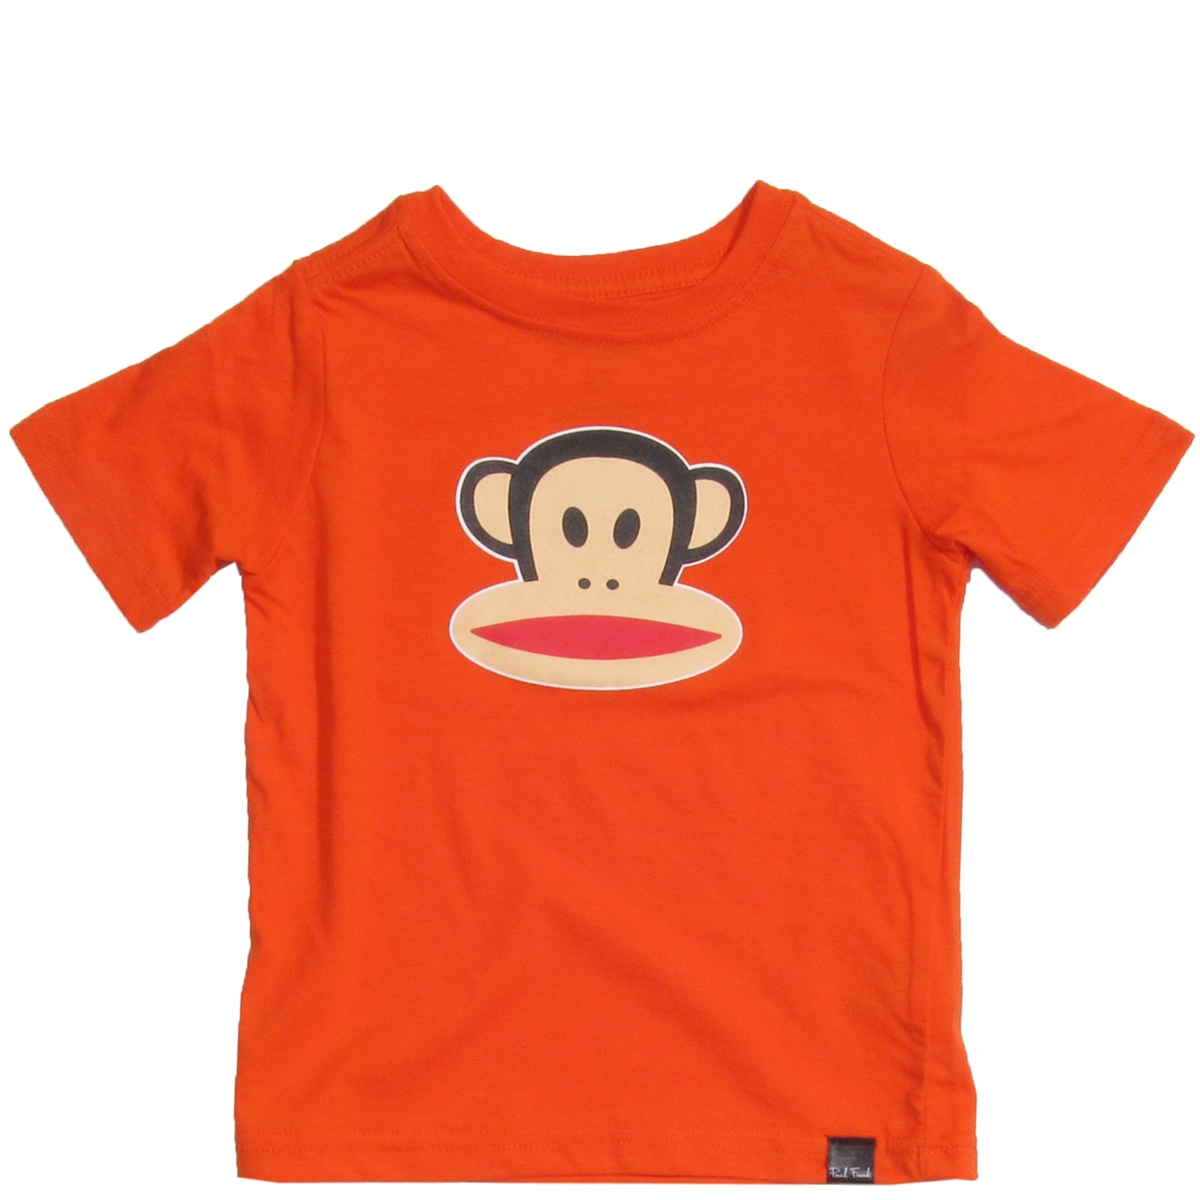 PAUL FRANK T-SHIRTS more images JSORGLX